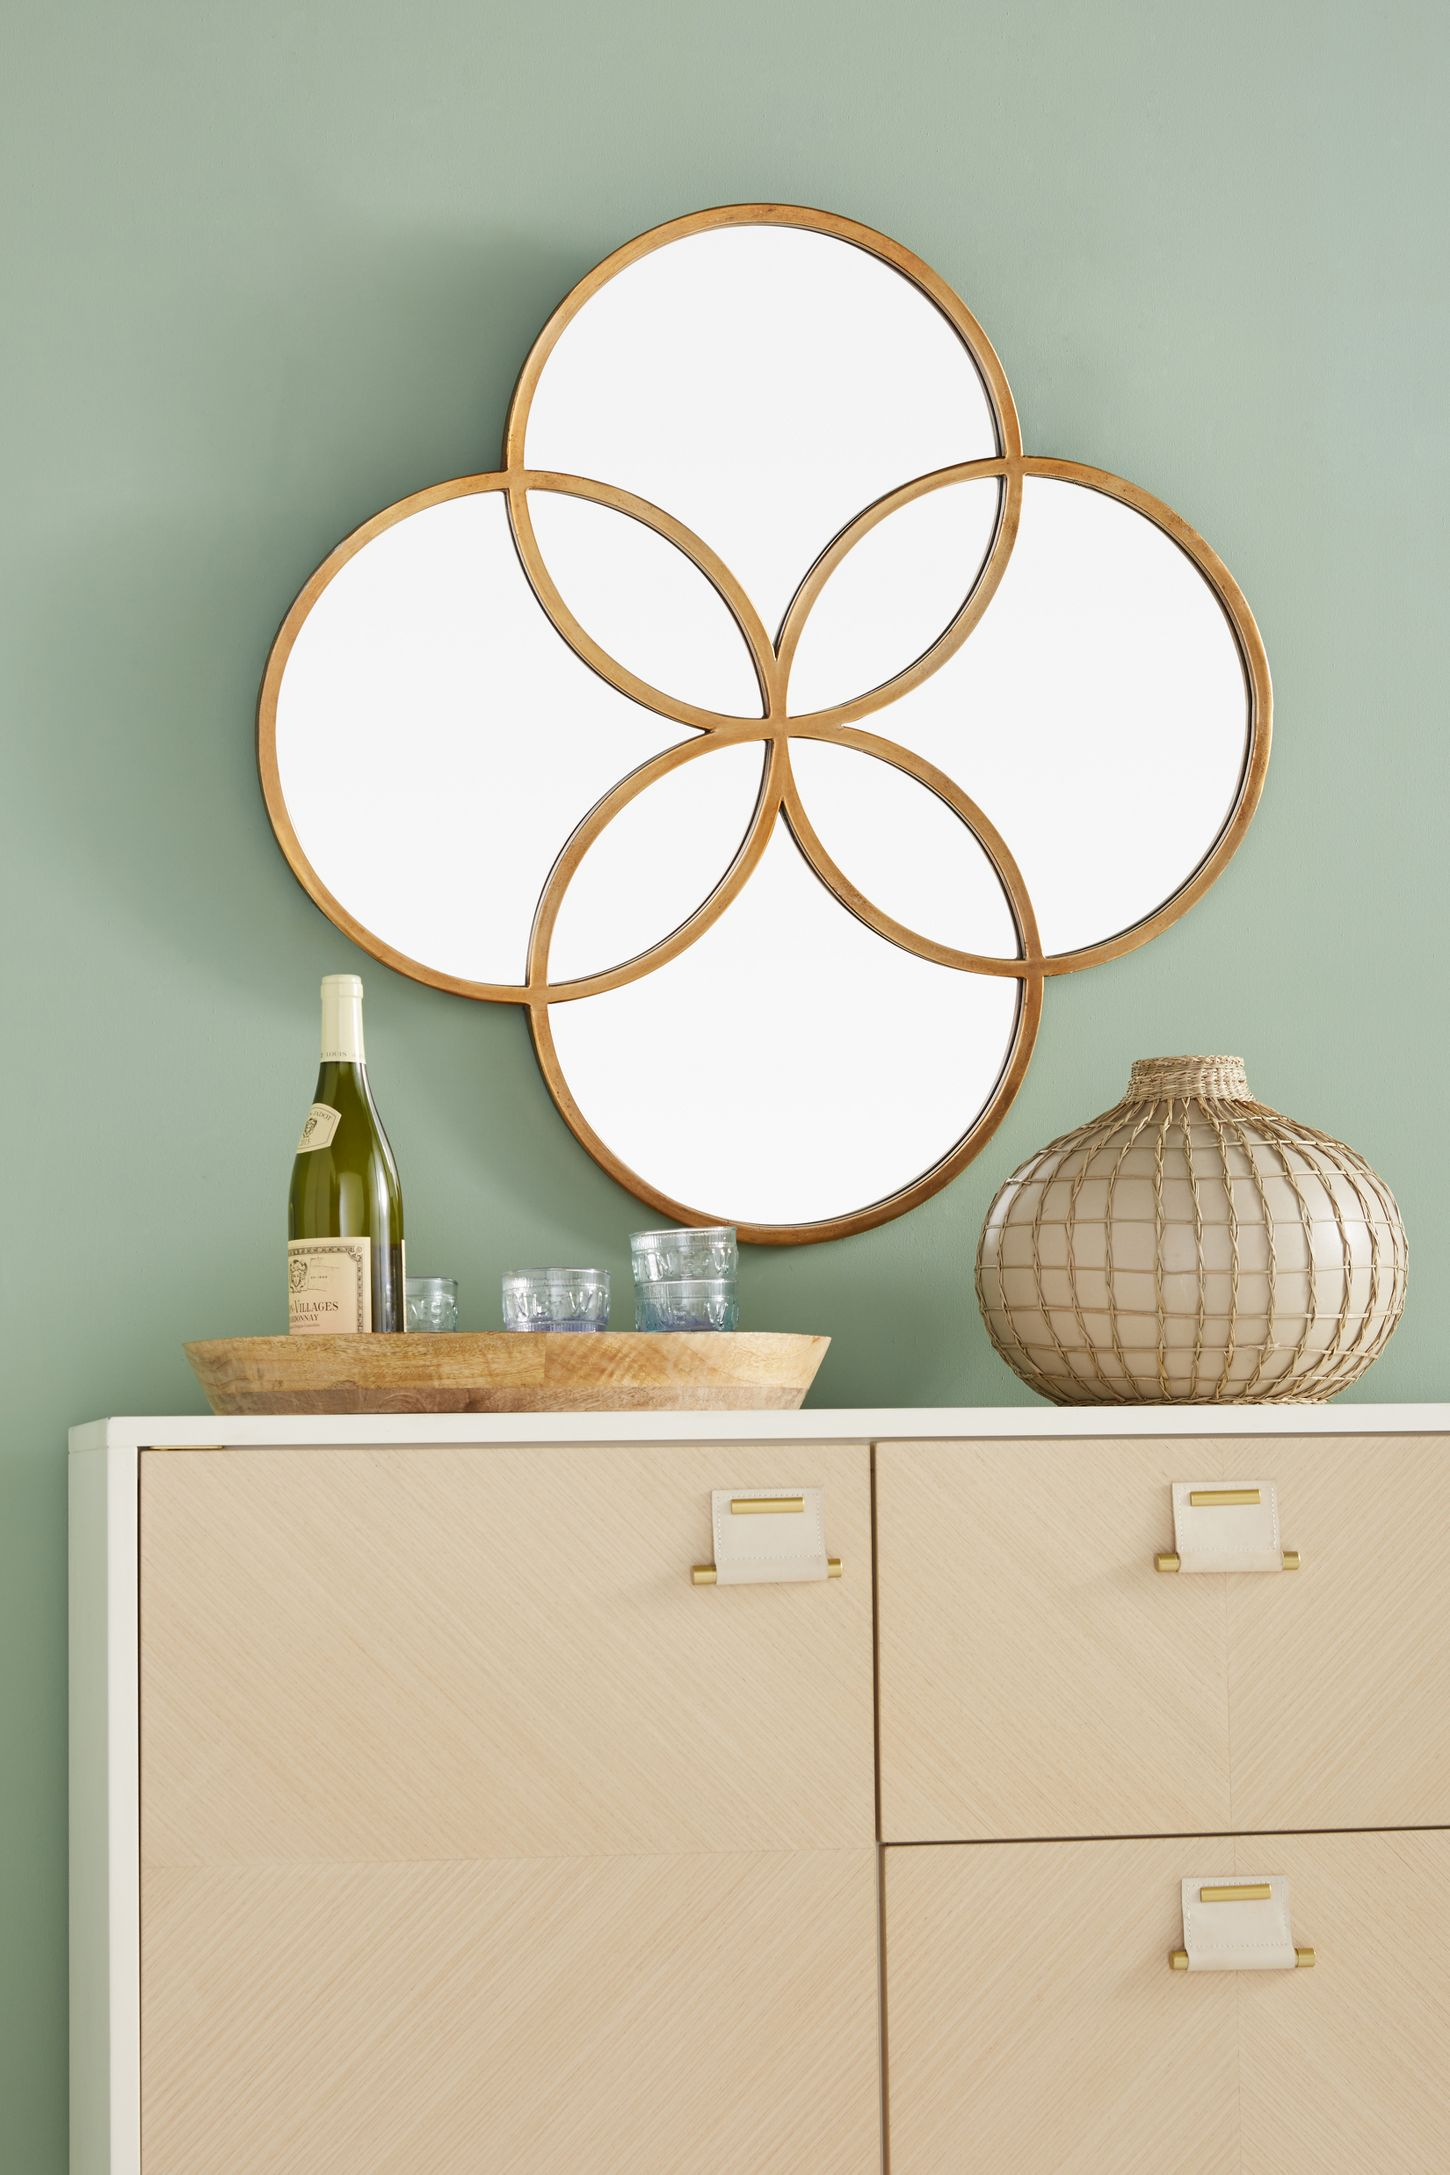 mirrors of home wall decor decoration different my decorative mirror with interior types design